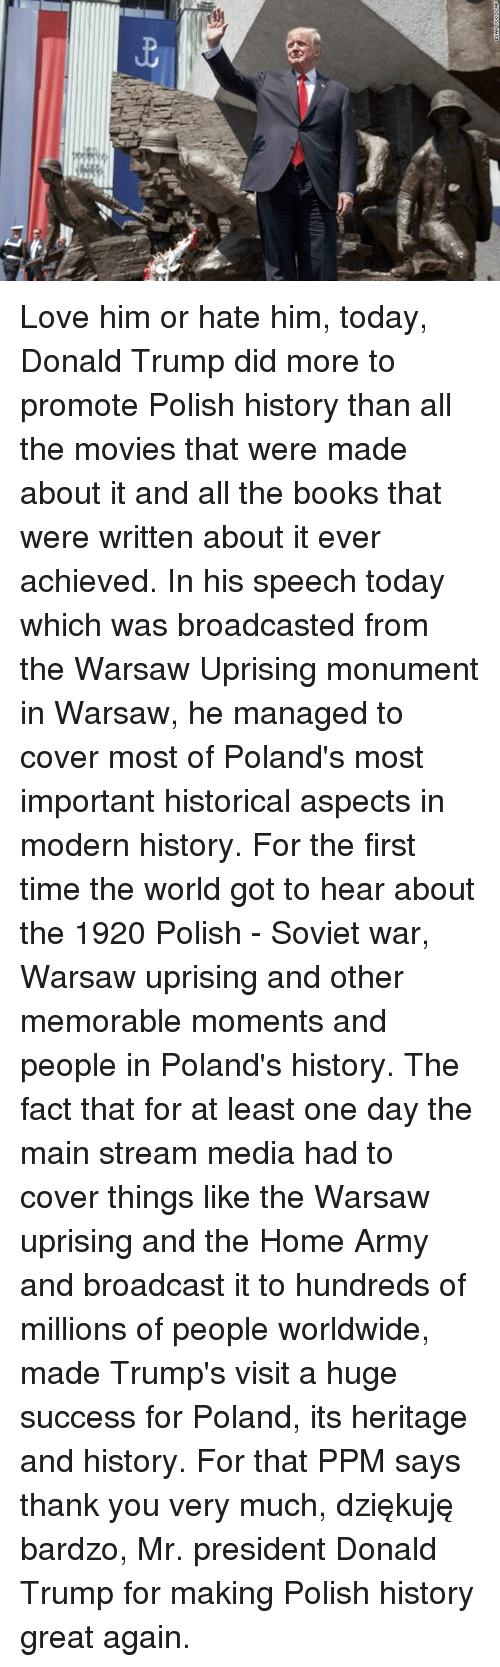 Books, Donald Trump, and Love: Love him or hate him, today, Donald Trump did more to promote Polish history than all the movies that were made about it and all the books that were written about it ever achieved.   In his speech today which was broadcasted from the Warsaw Uprising monument in Warsaw, he managed to cover most of Poland's most important historical aspects in modern history.   For the first time the world got to hear about the 1920 Polish - Soviet war, Warsaw uprising and other memorable moments and people in Poland's history.   The fact that for at least one day the main stream media had to cover things like the Warsaw uprising and the Home Army and broadcast it to hundreds of millions of people worldwide, made Trump's visit a huge success for Poland, its heritage and history.   For that PPM says thank you very much, dziękuję bardzo, Mr. president Donald Trump for making Polish history great again.